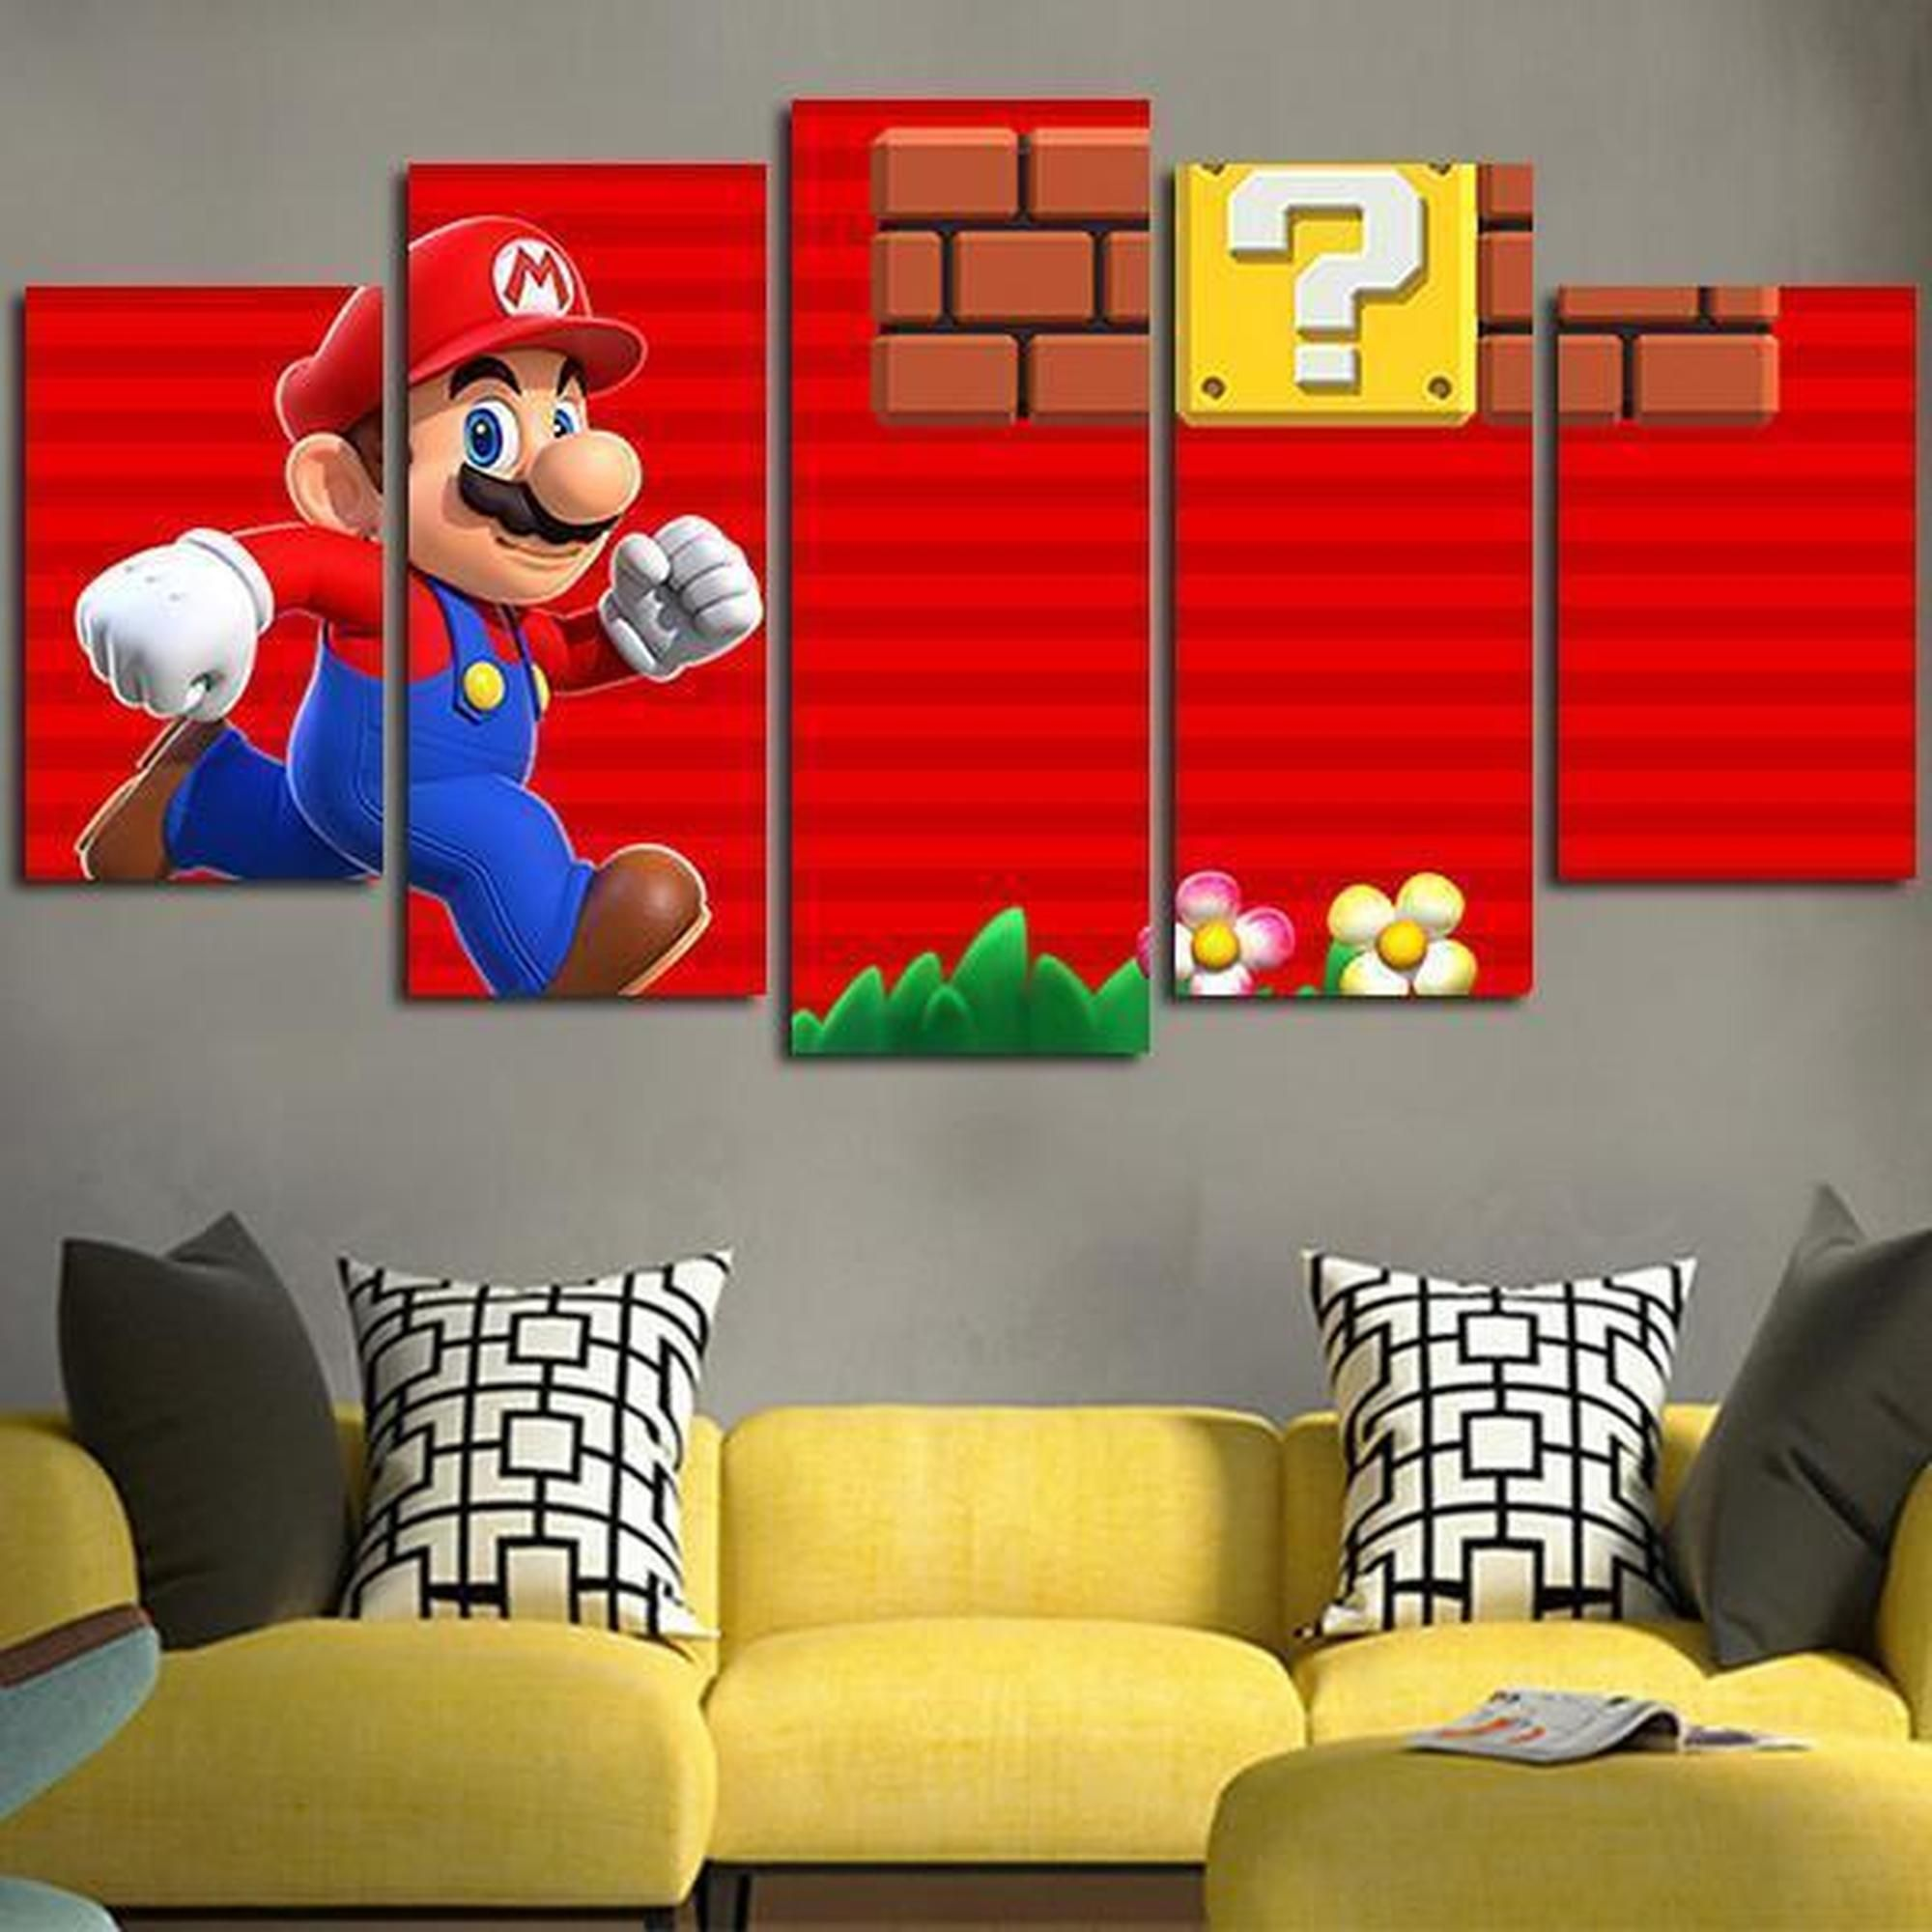 Super Mario Red Background Gaming Canvas Wall Art Customized Canvas Art Dragon Ball Art Anime Canvas